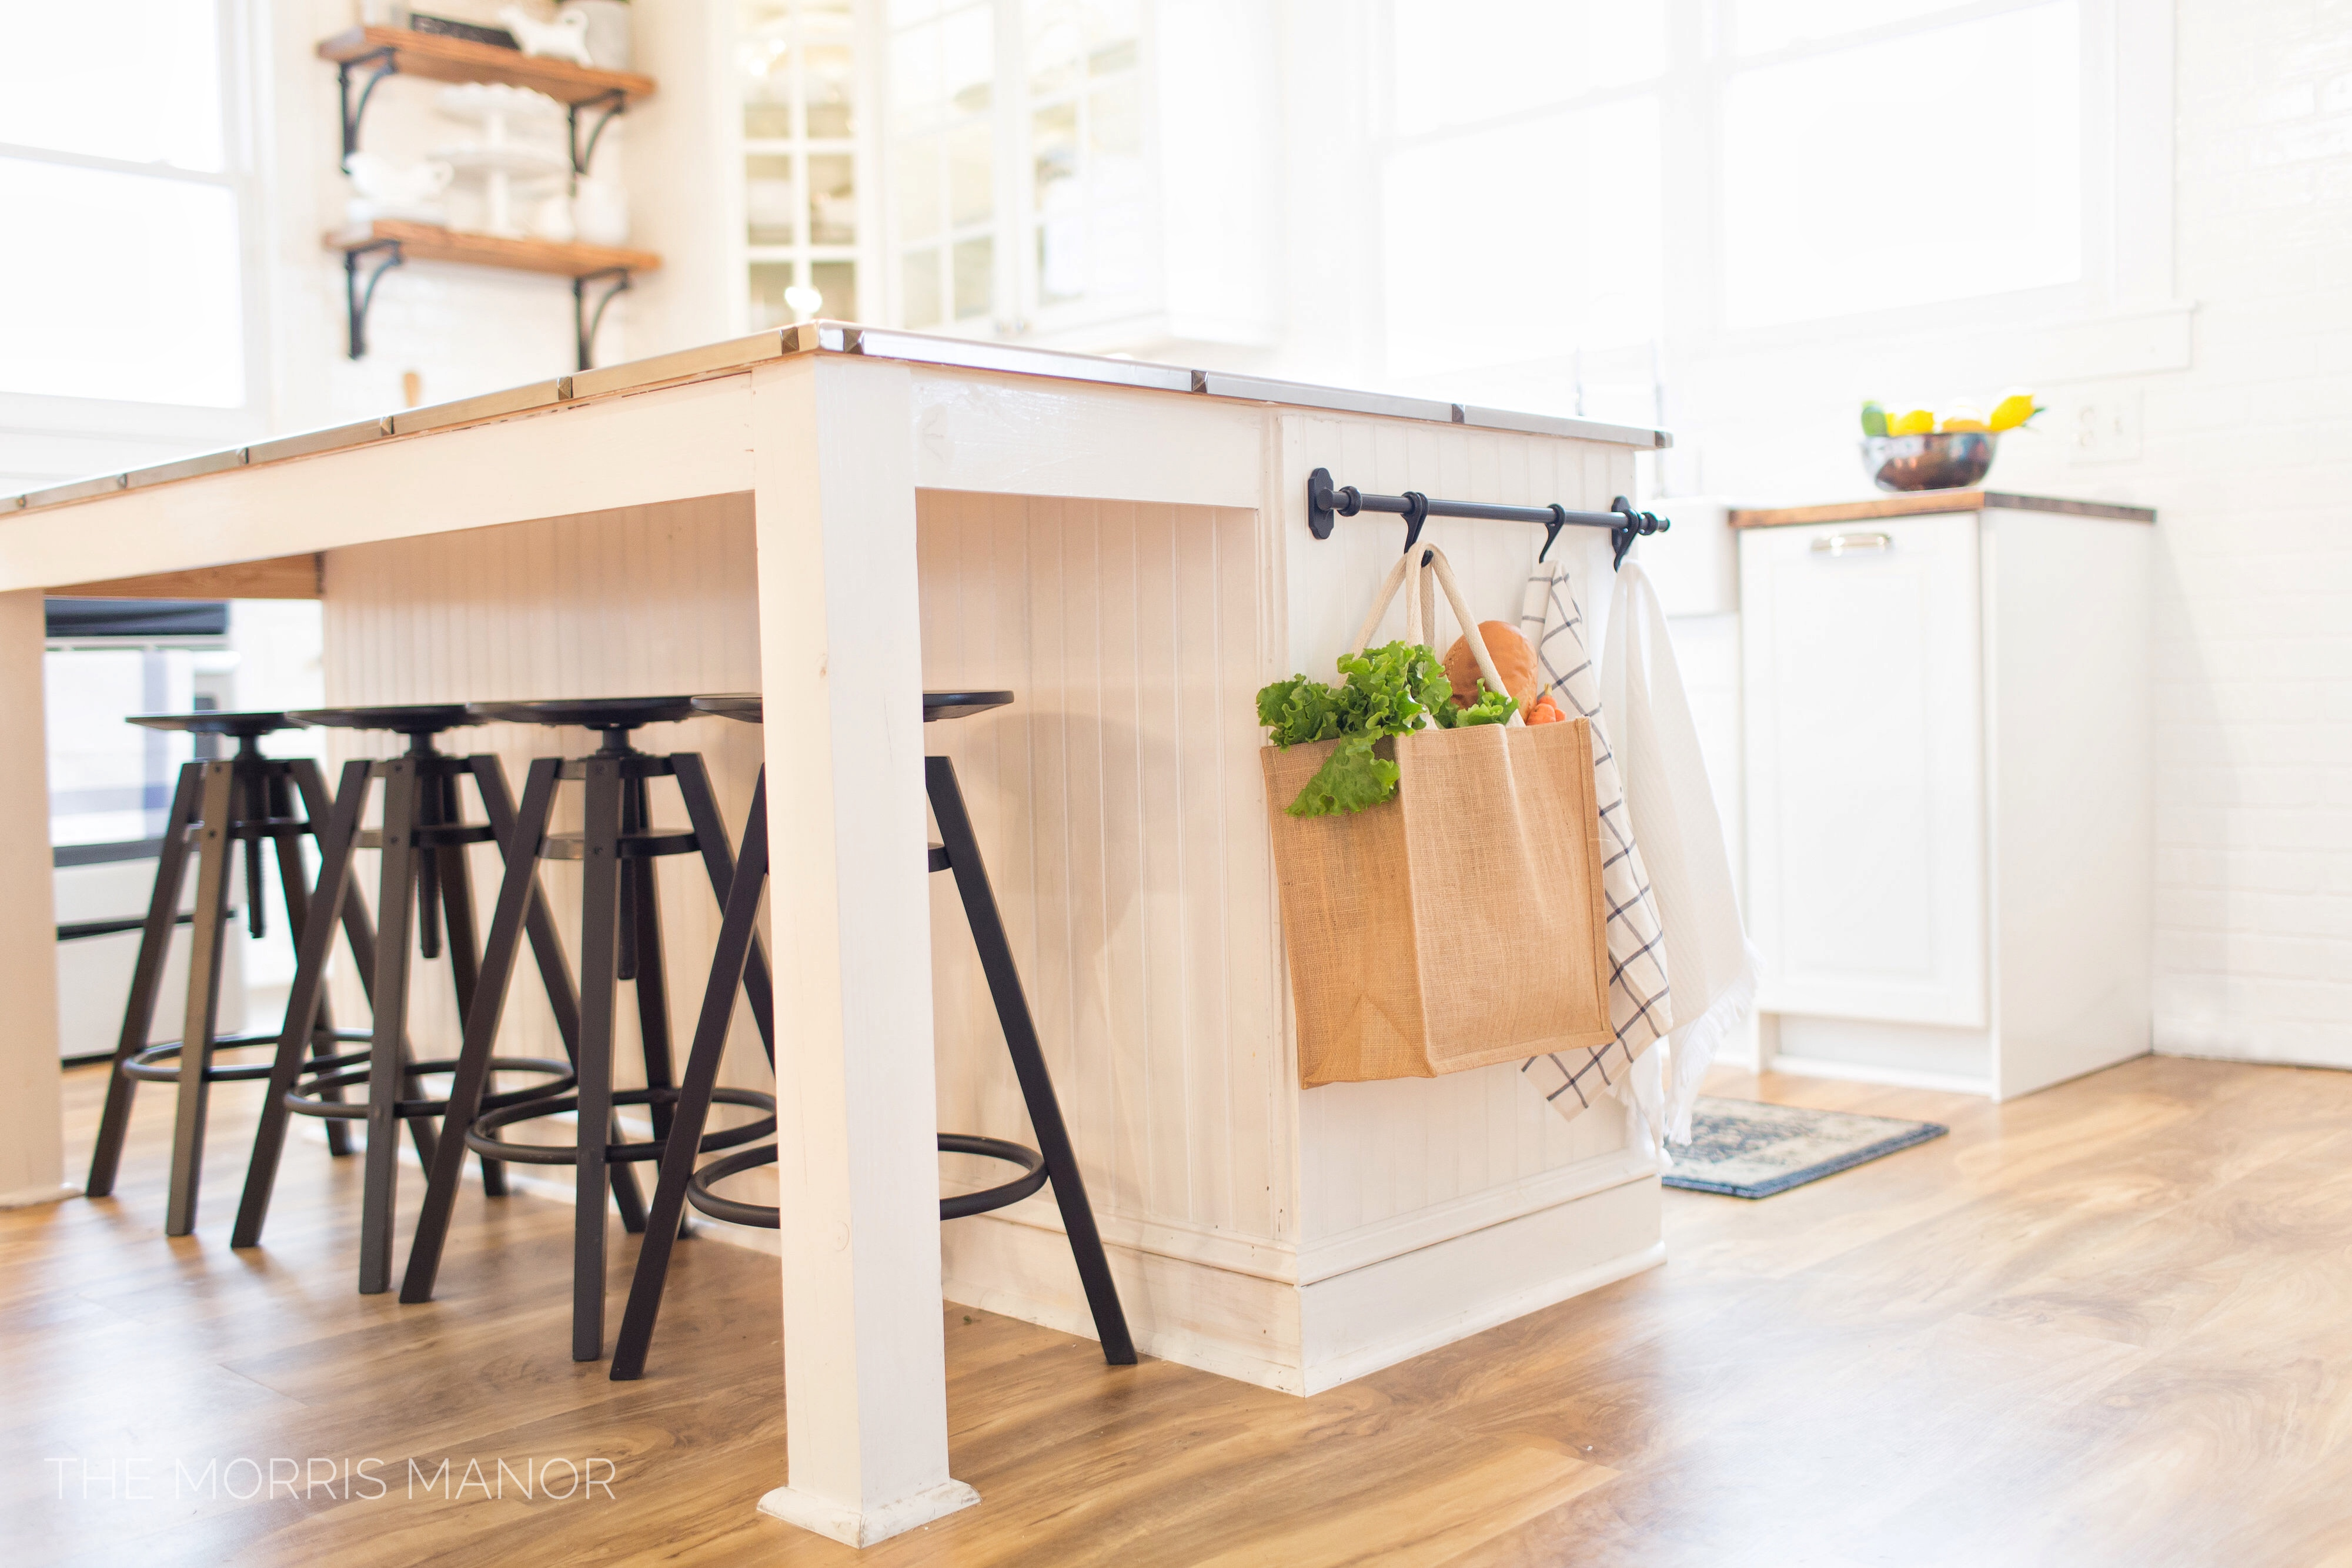 The Morris Manor Home Tour - Vintage White Farmhouse Kitchen Island, Stainless Steel Counter Top, Ikea Rod Storage